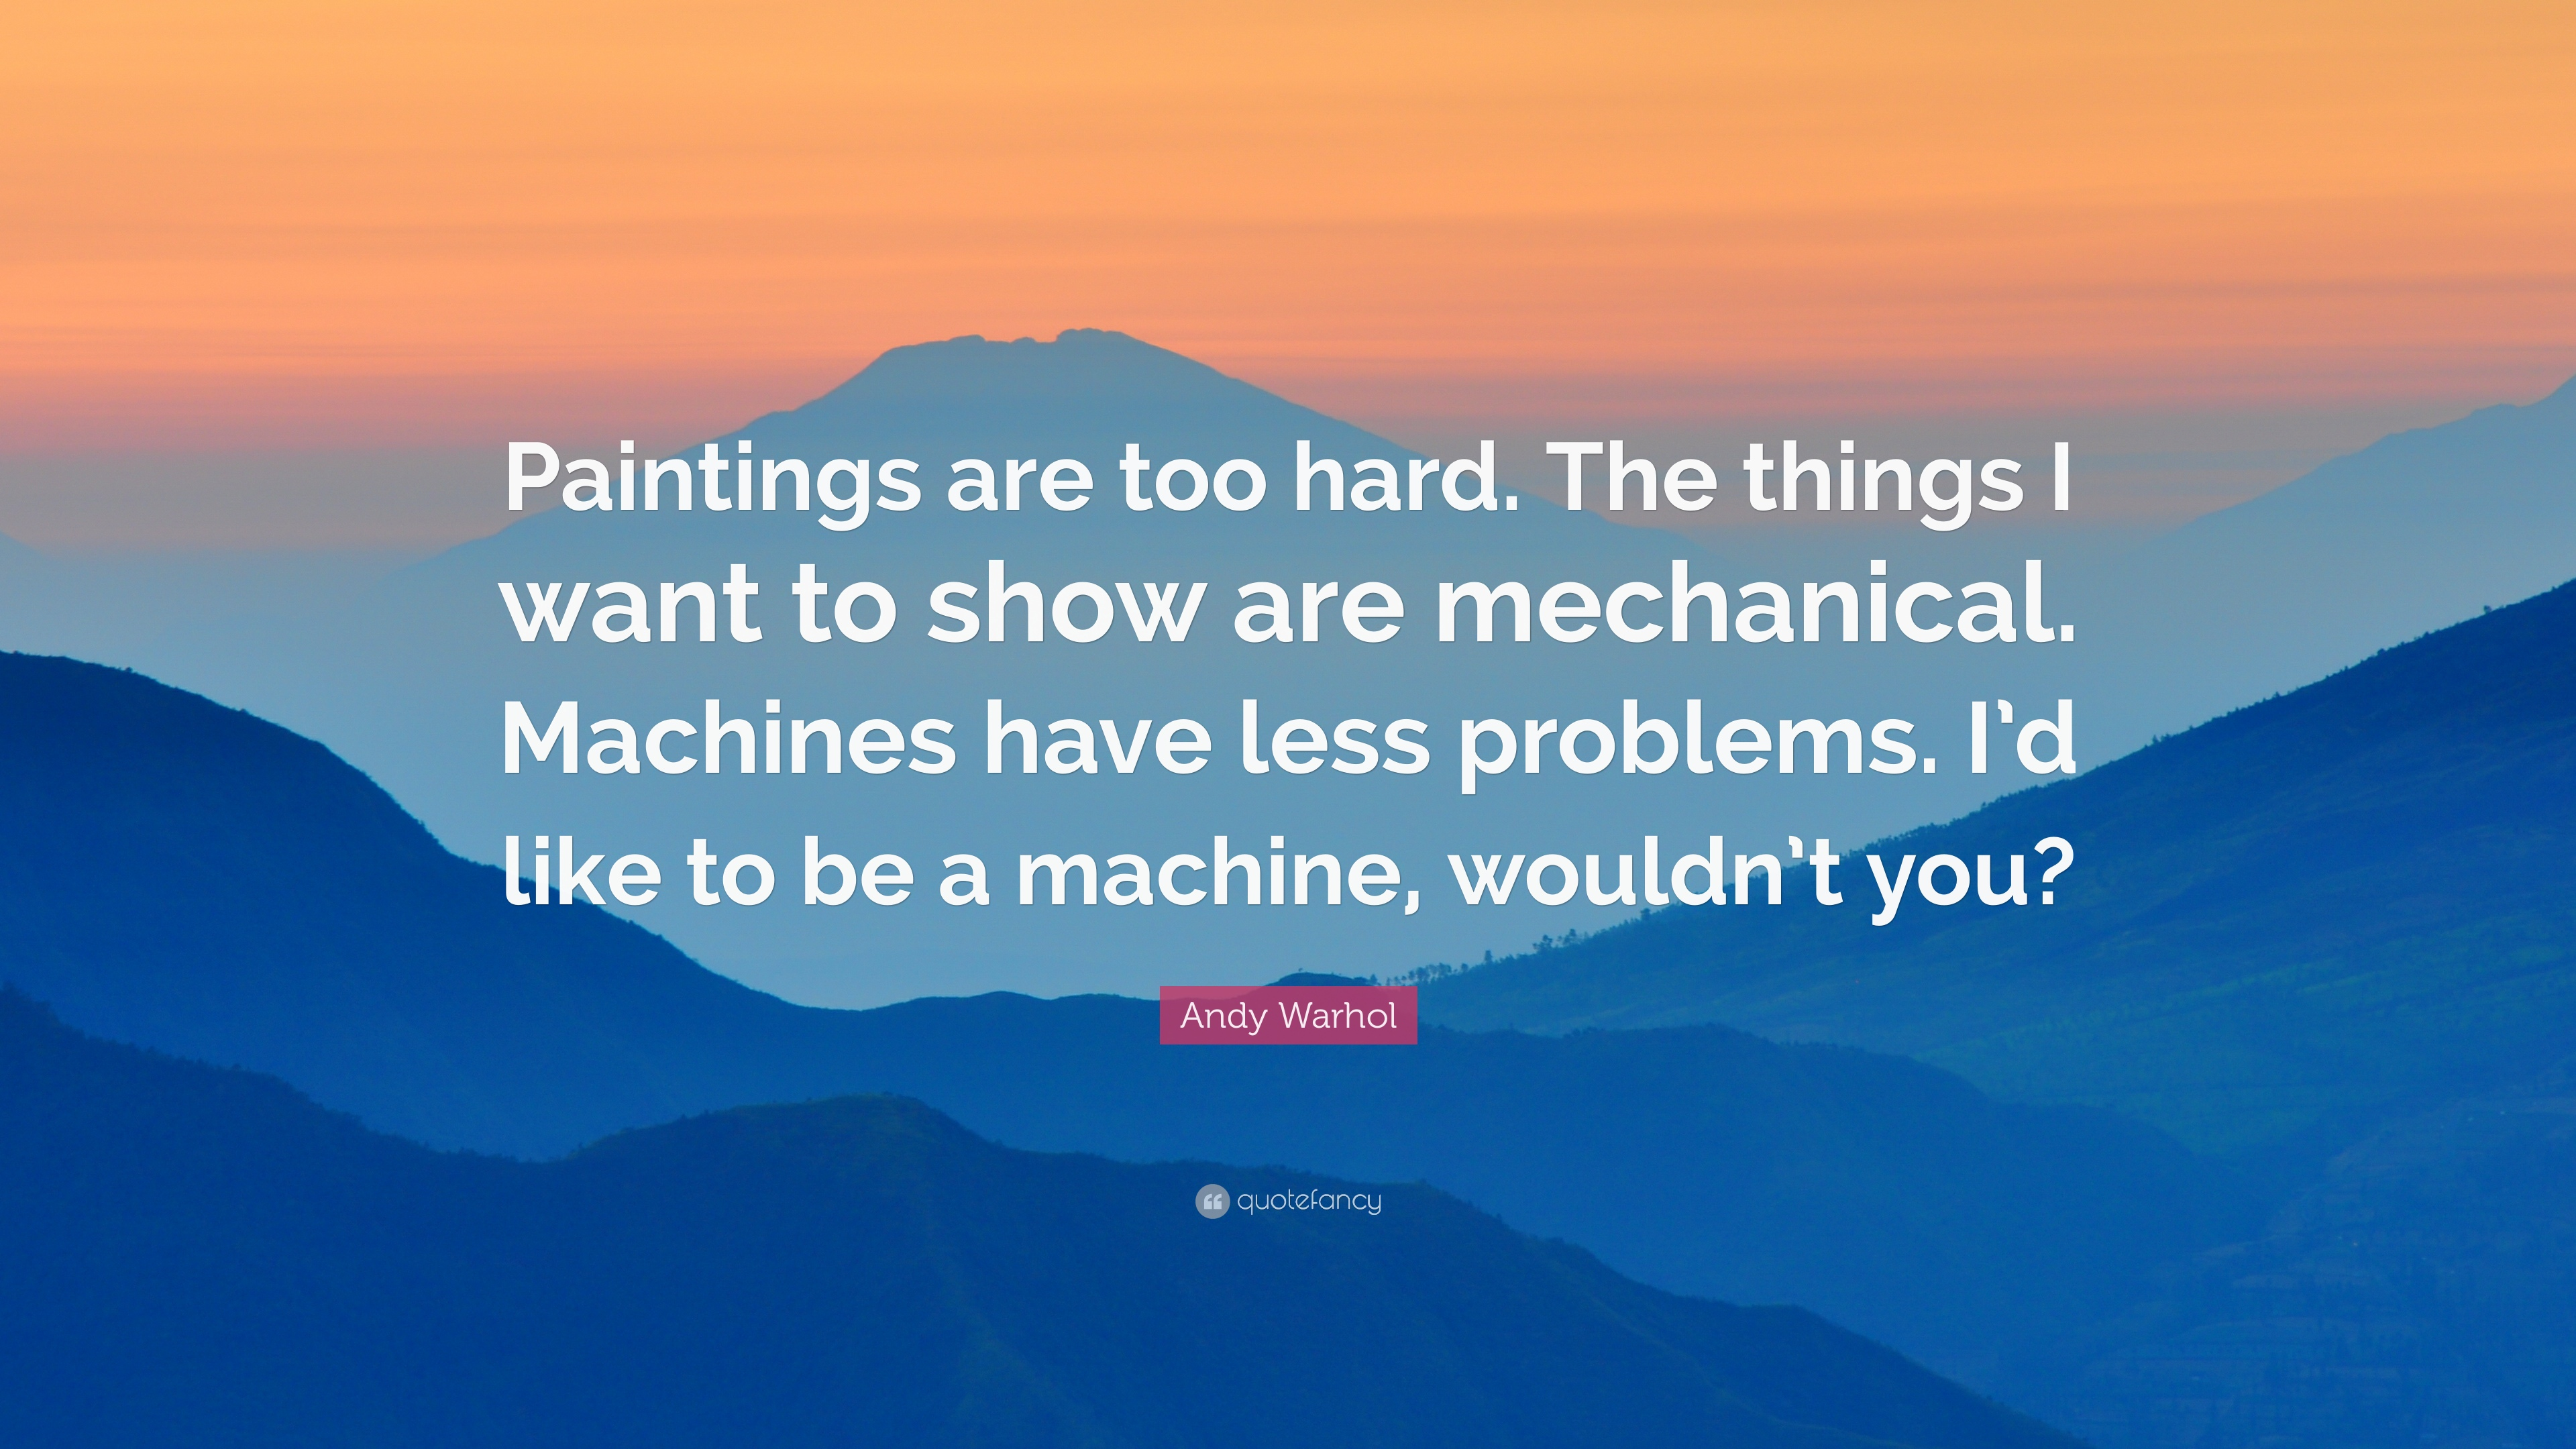 quote paintings in essay Share the best art quotes collection by famous artists, authors, painters, poets enjoy our art quote of the day on the web, facebook and your blogs the art of communication is the language of leadership.